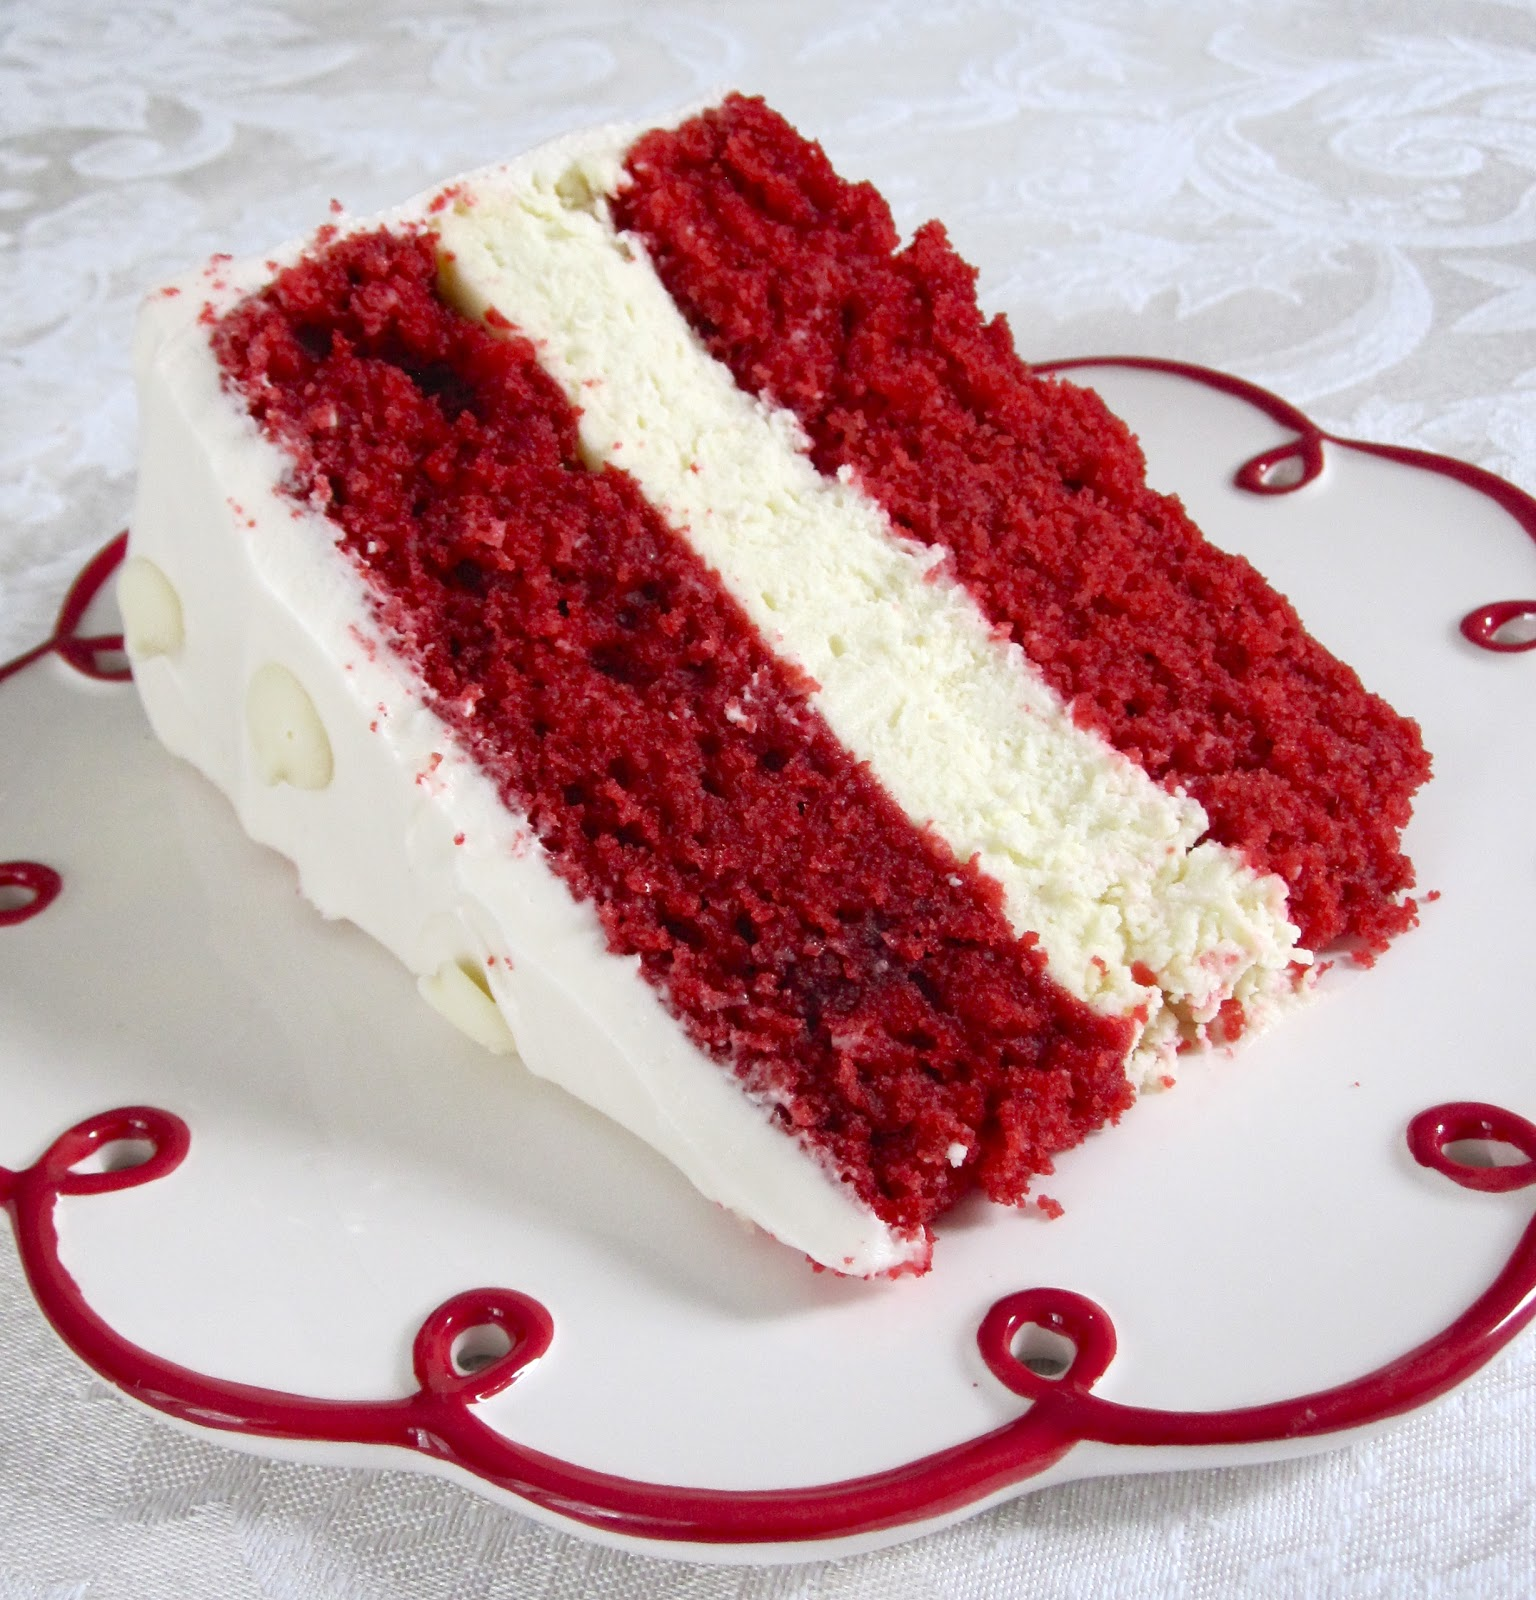 Images Of Red Cake : Red Velvet Cake Recipes   Dishmaps